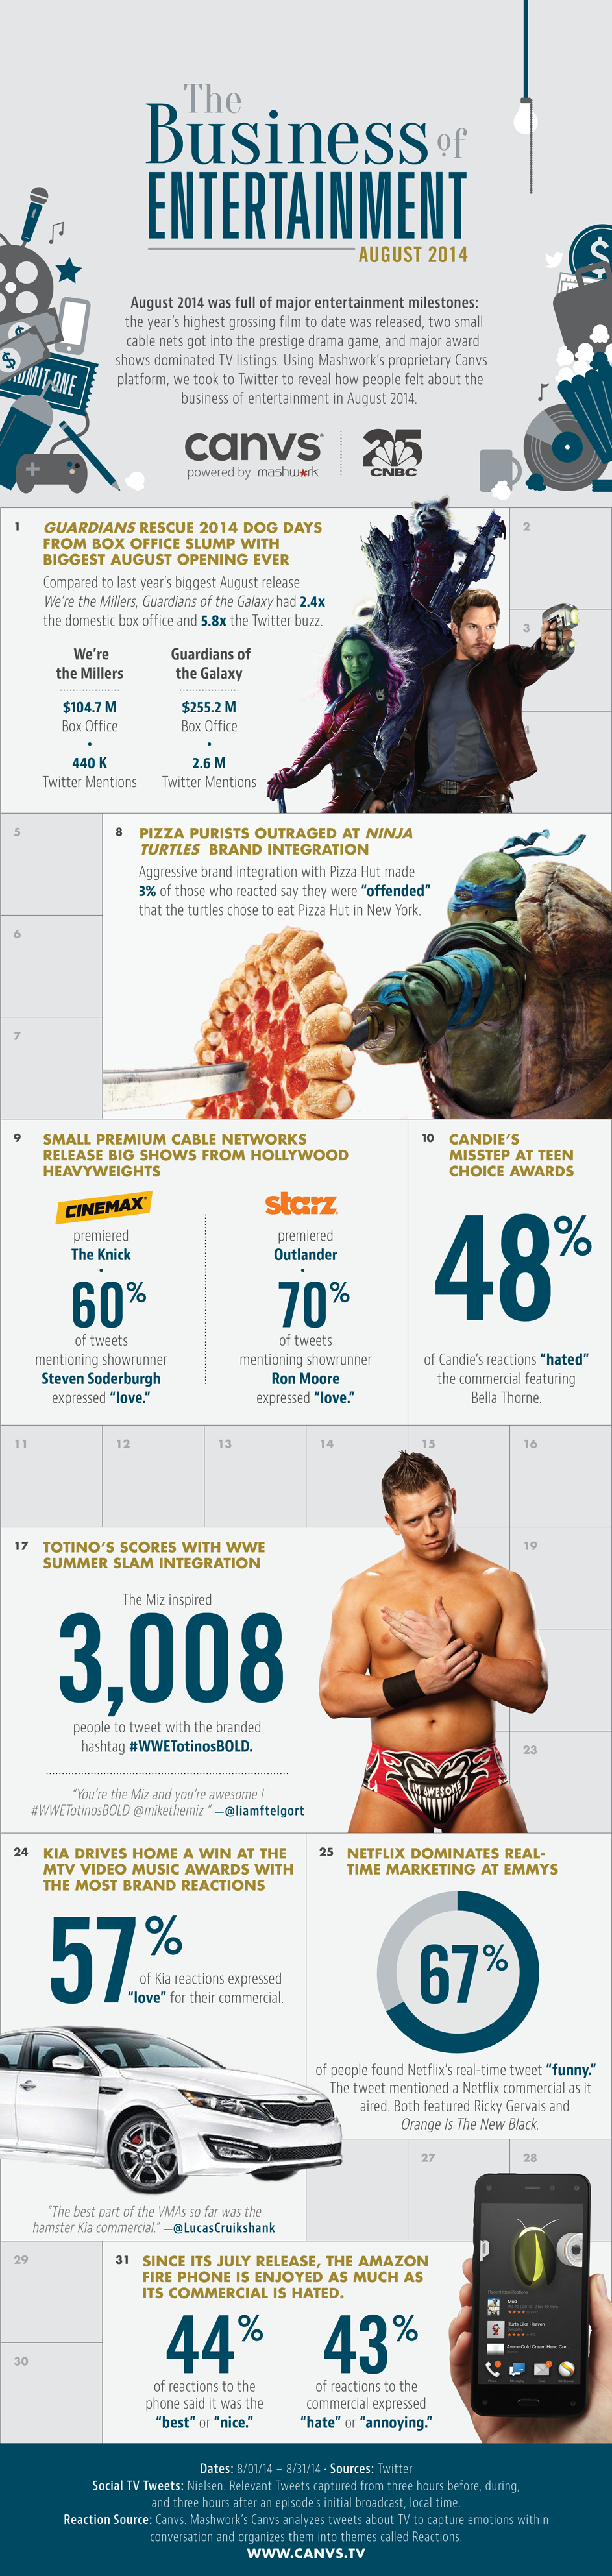 Business_of_Entertainment_Infographic